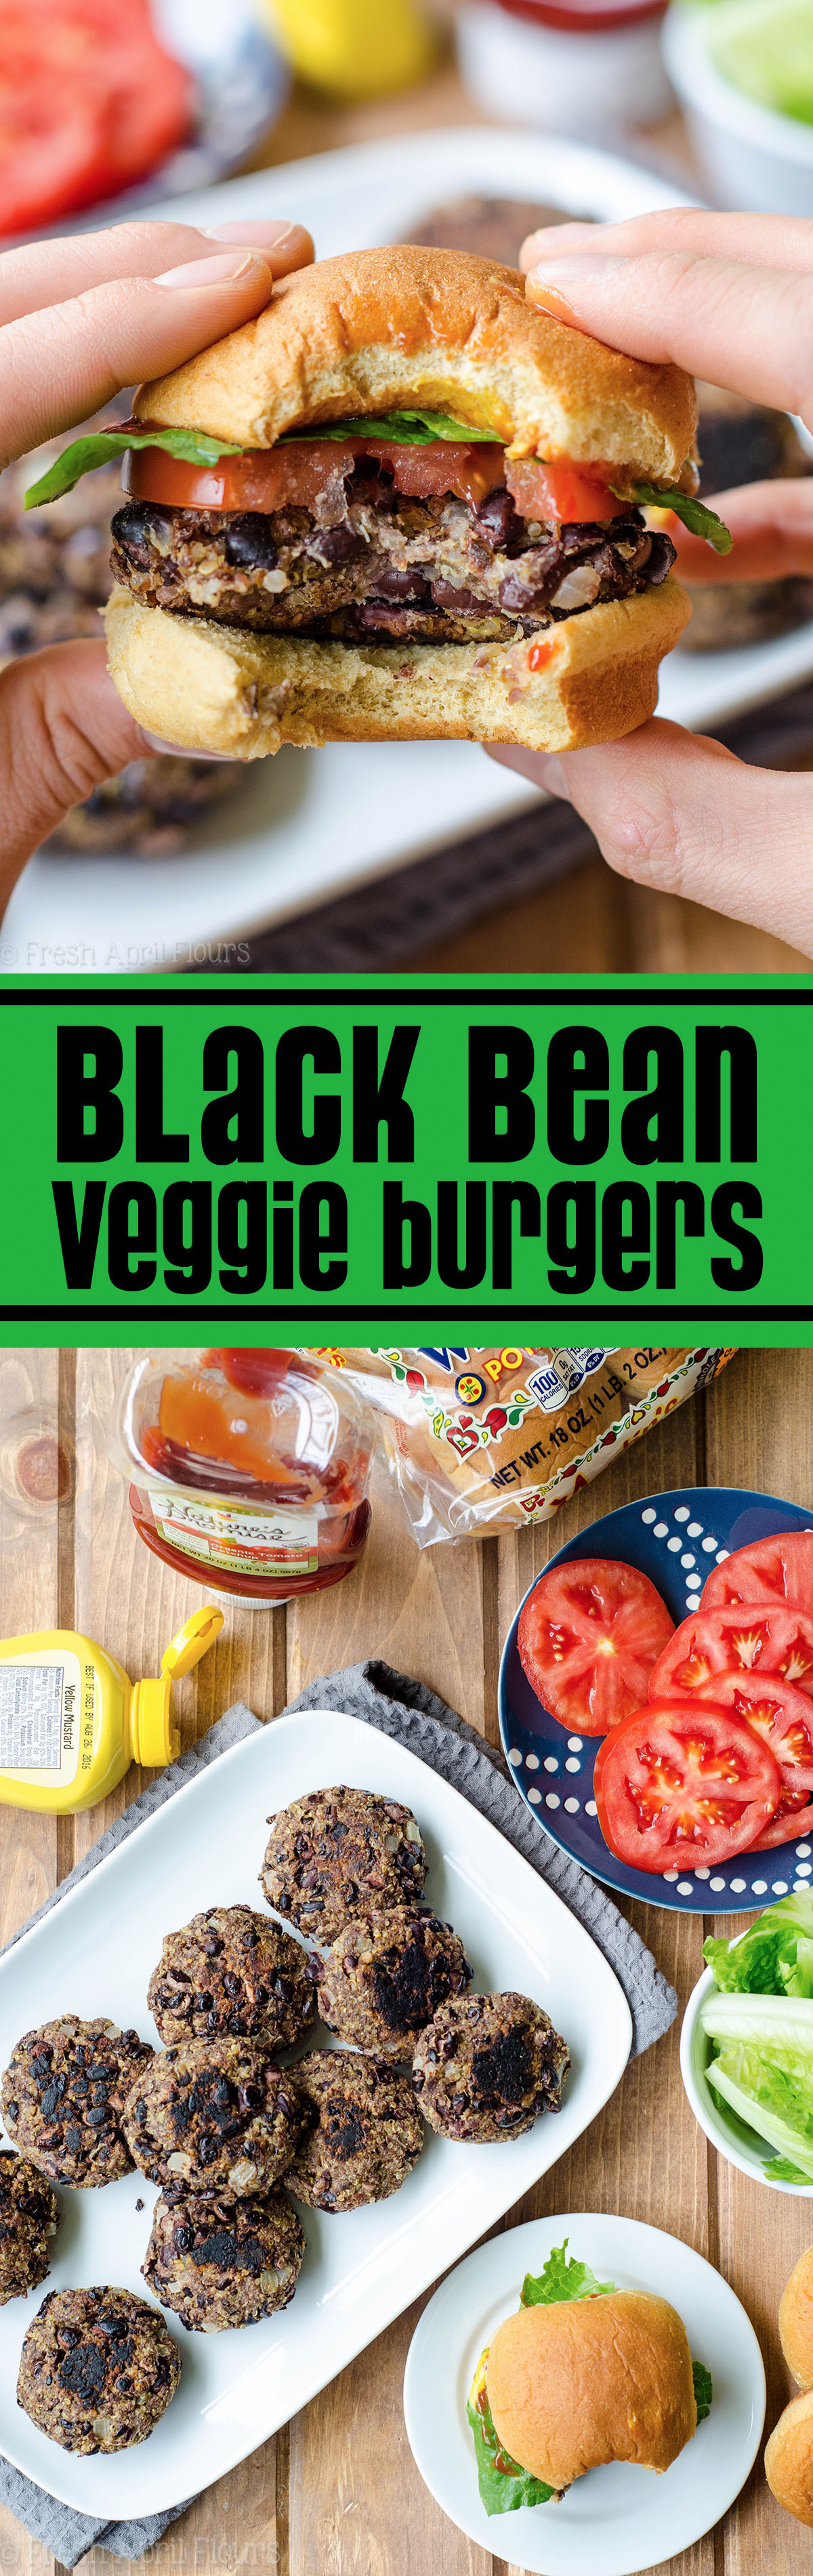 Black Bean Veggie Burgers: Hearty, flavorful, meatless burgers that can easily go on the grill or in a skillet on the stove top. Great between a bun or over a salad.